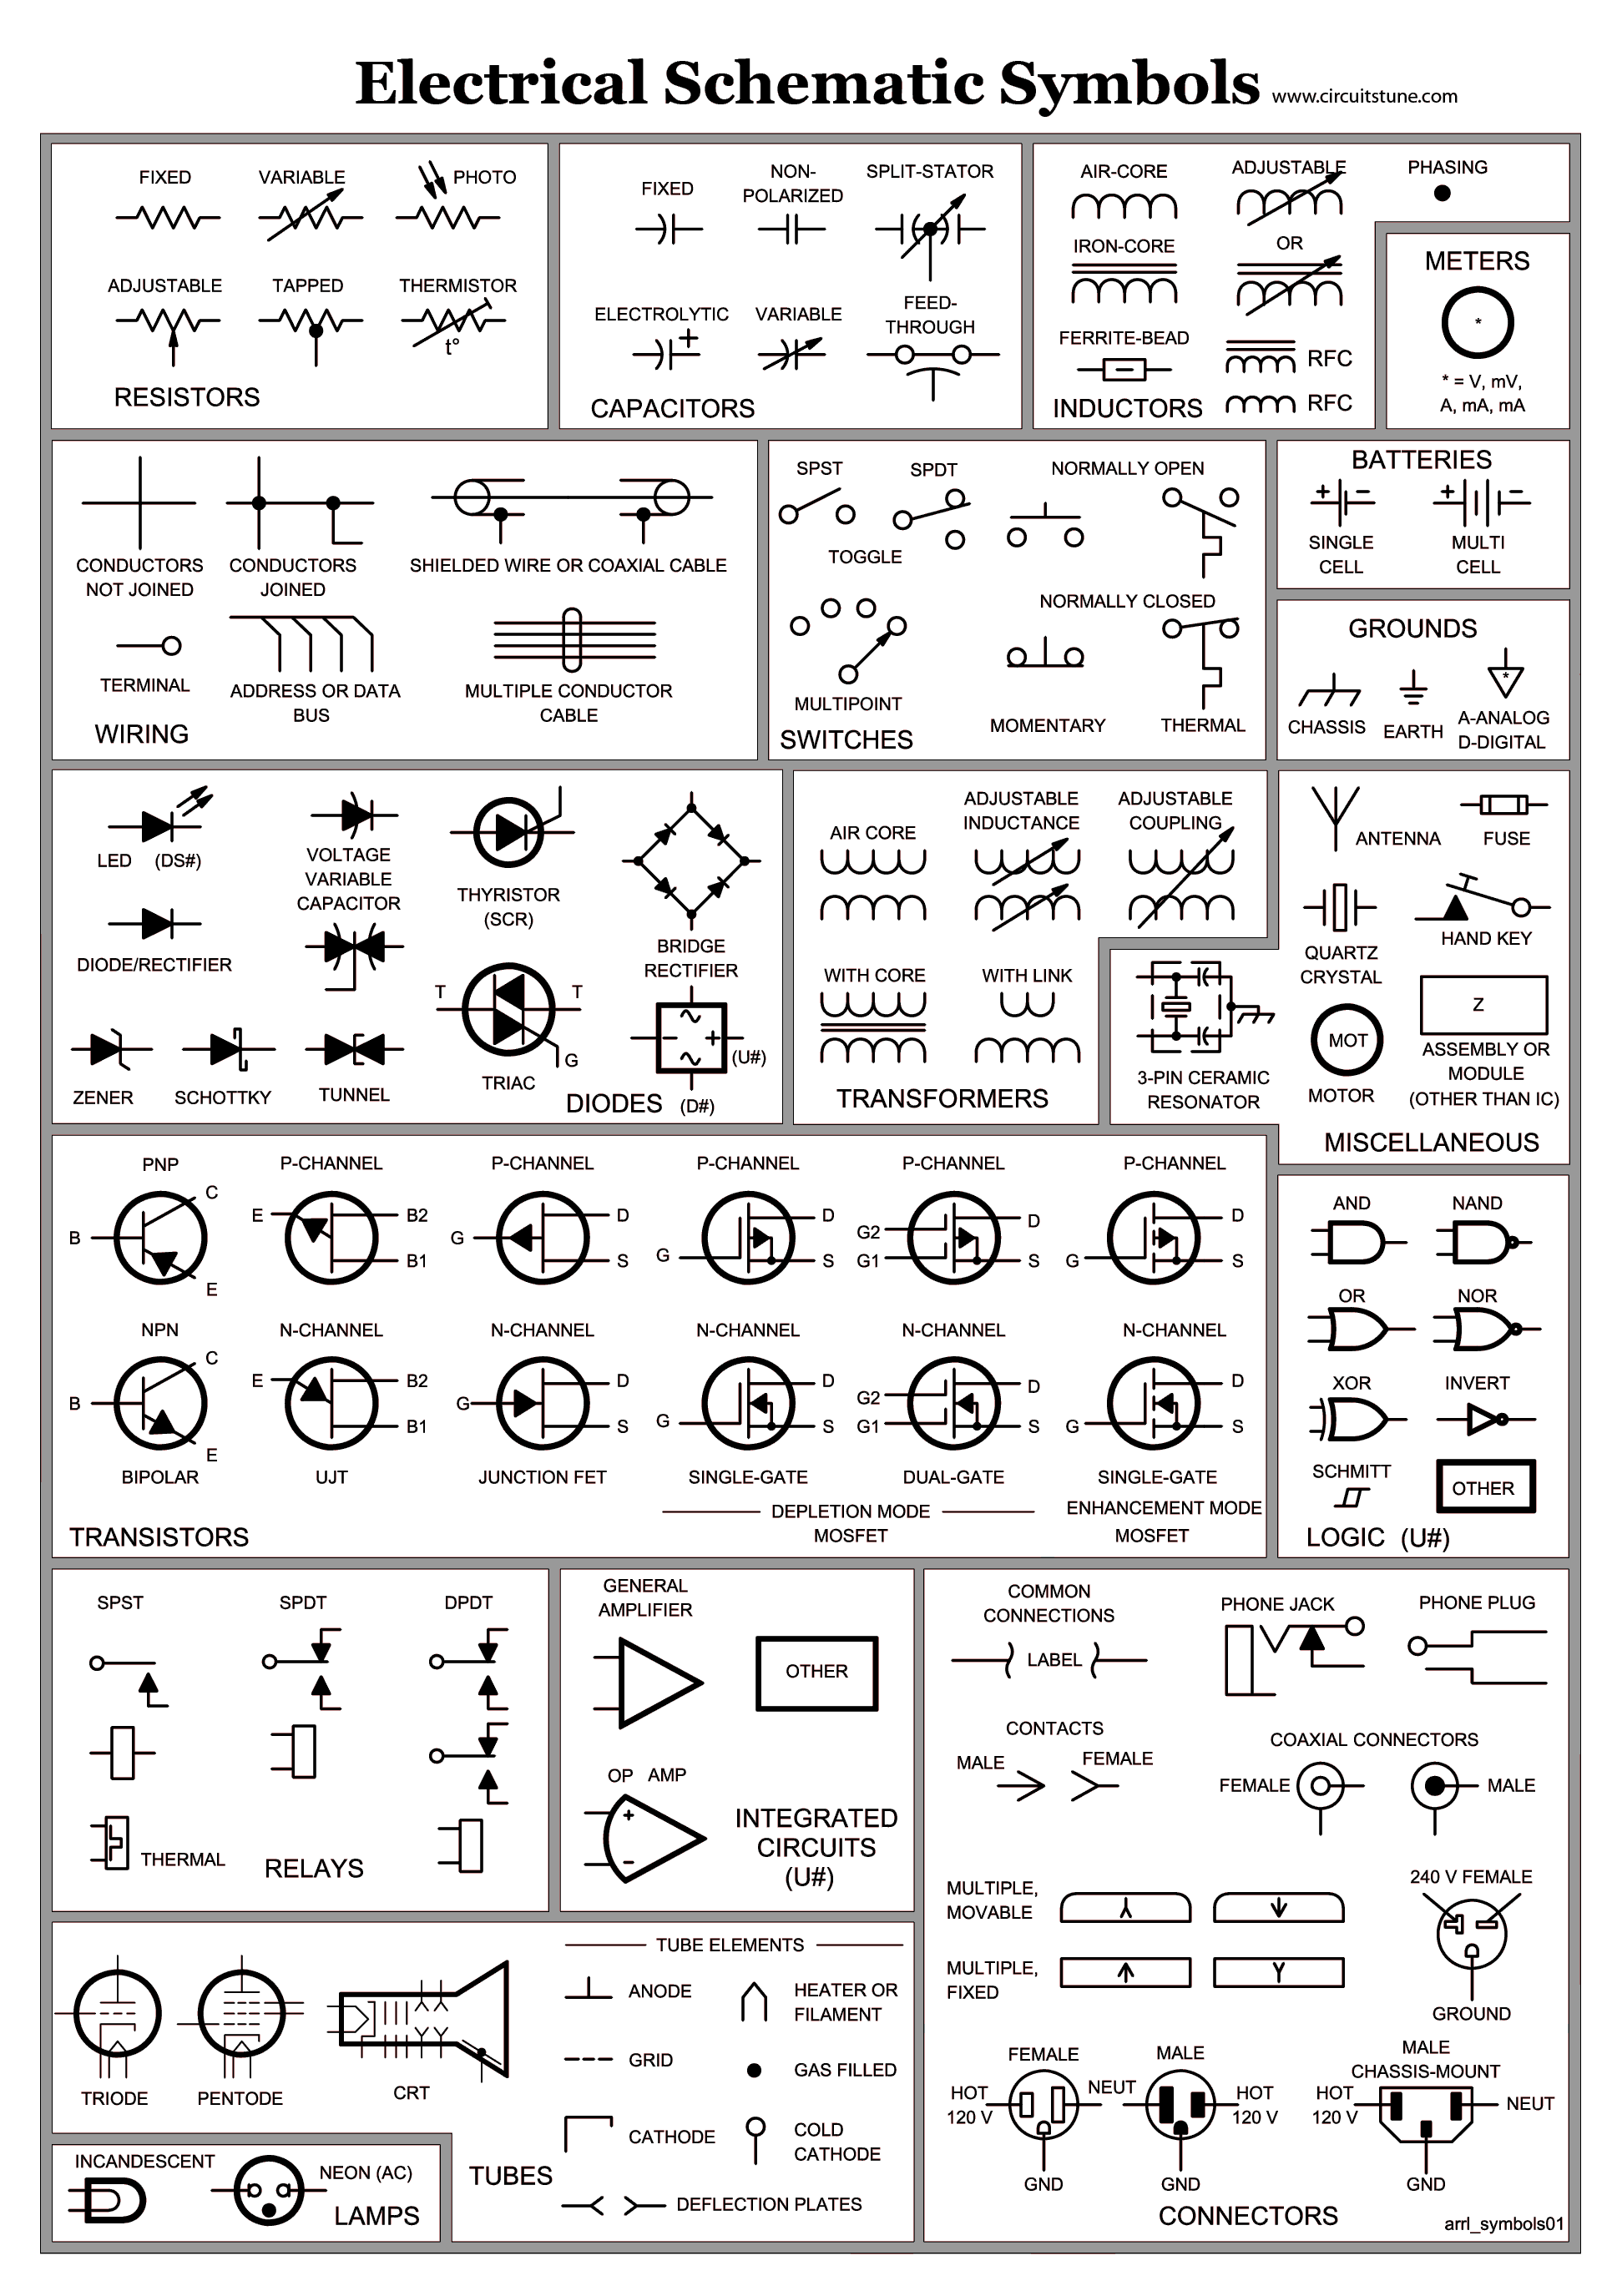 medium resolution of electrical schematic symbols skinsquiggles electrical wiringelectrical schematic symbols